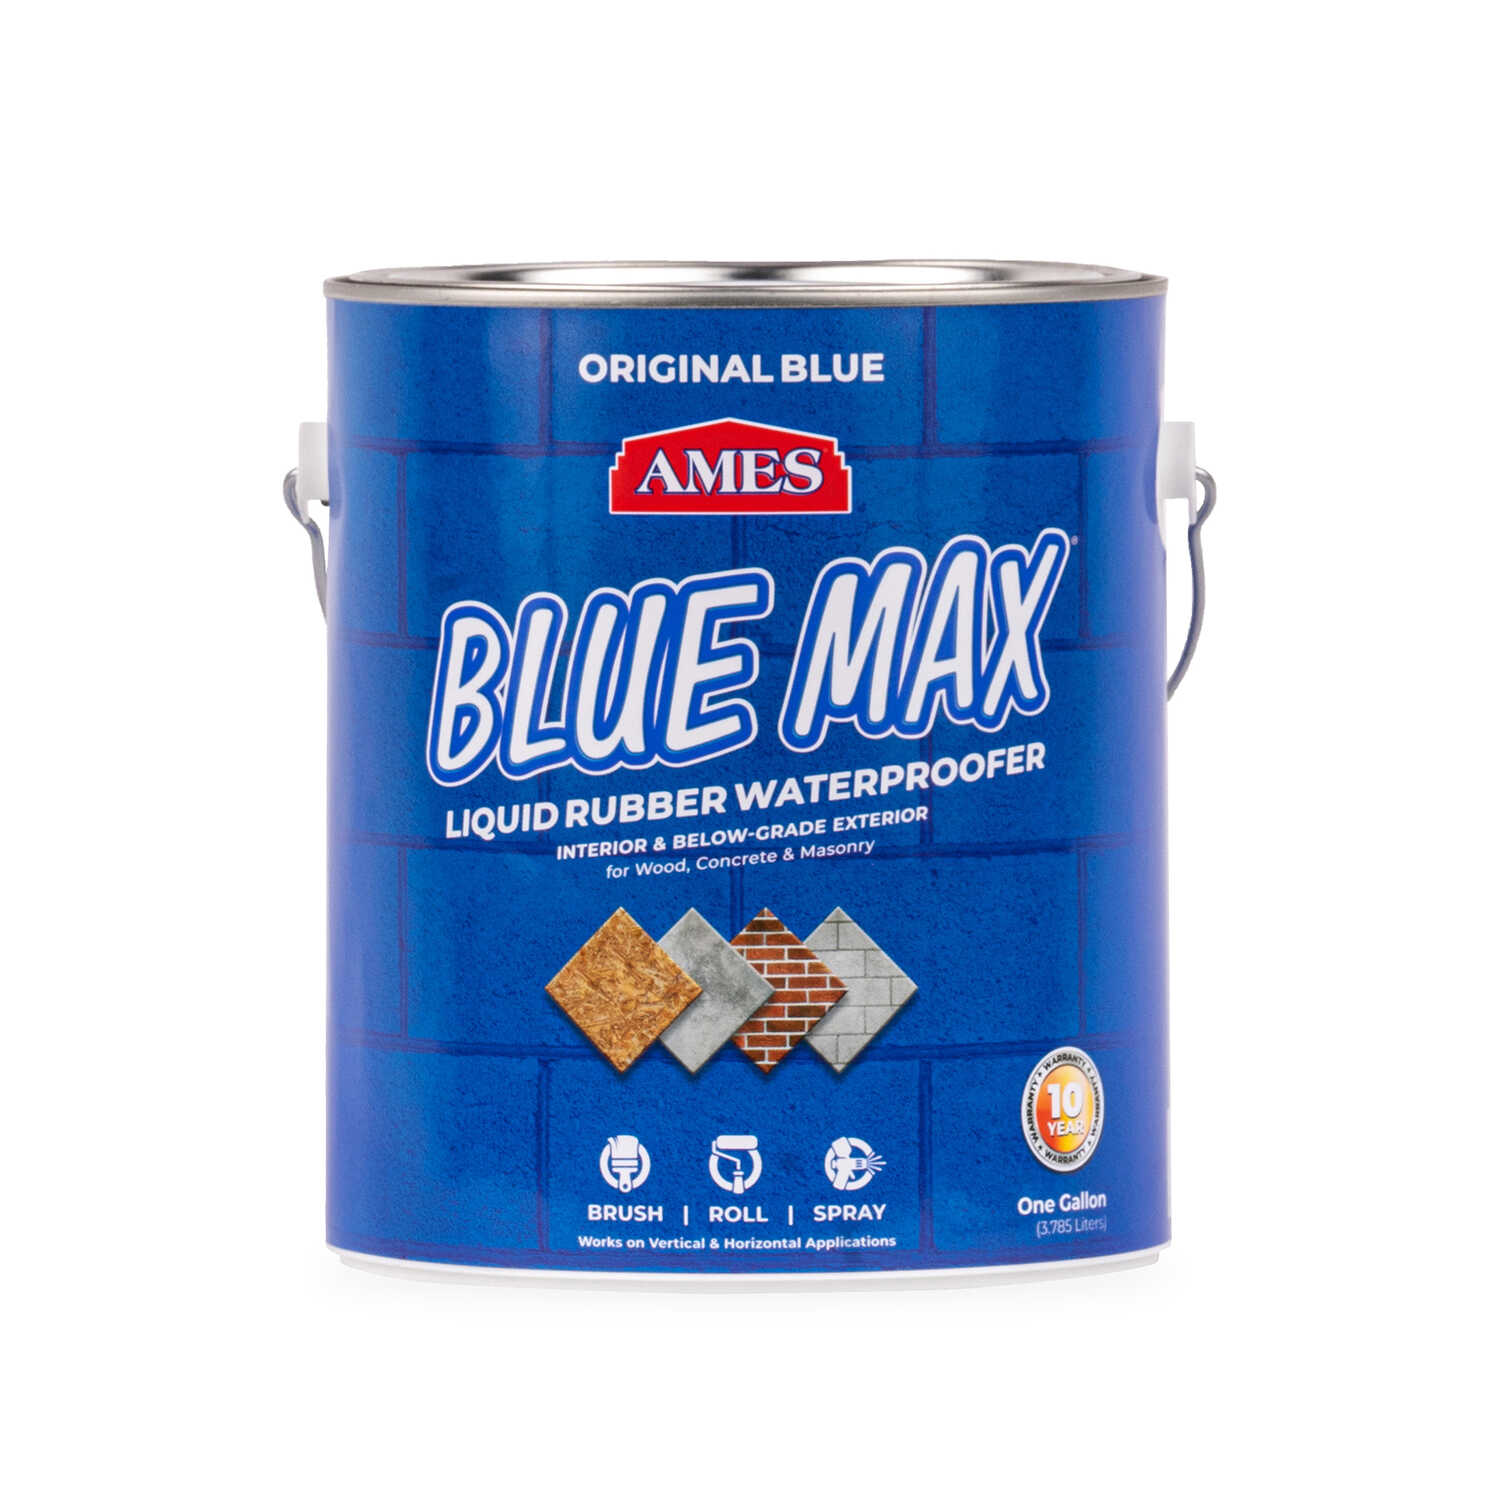 Ames Blue Max Matte Translucent Blue Water-Based Waterproof